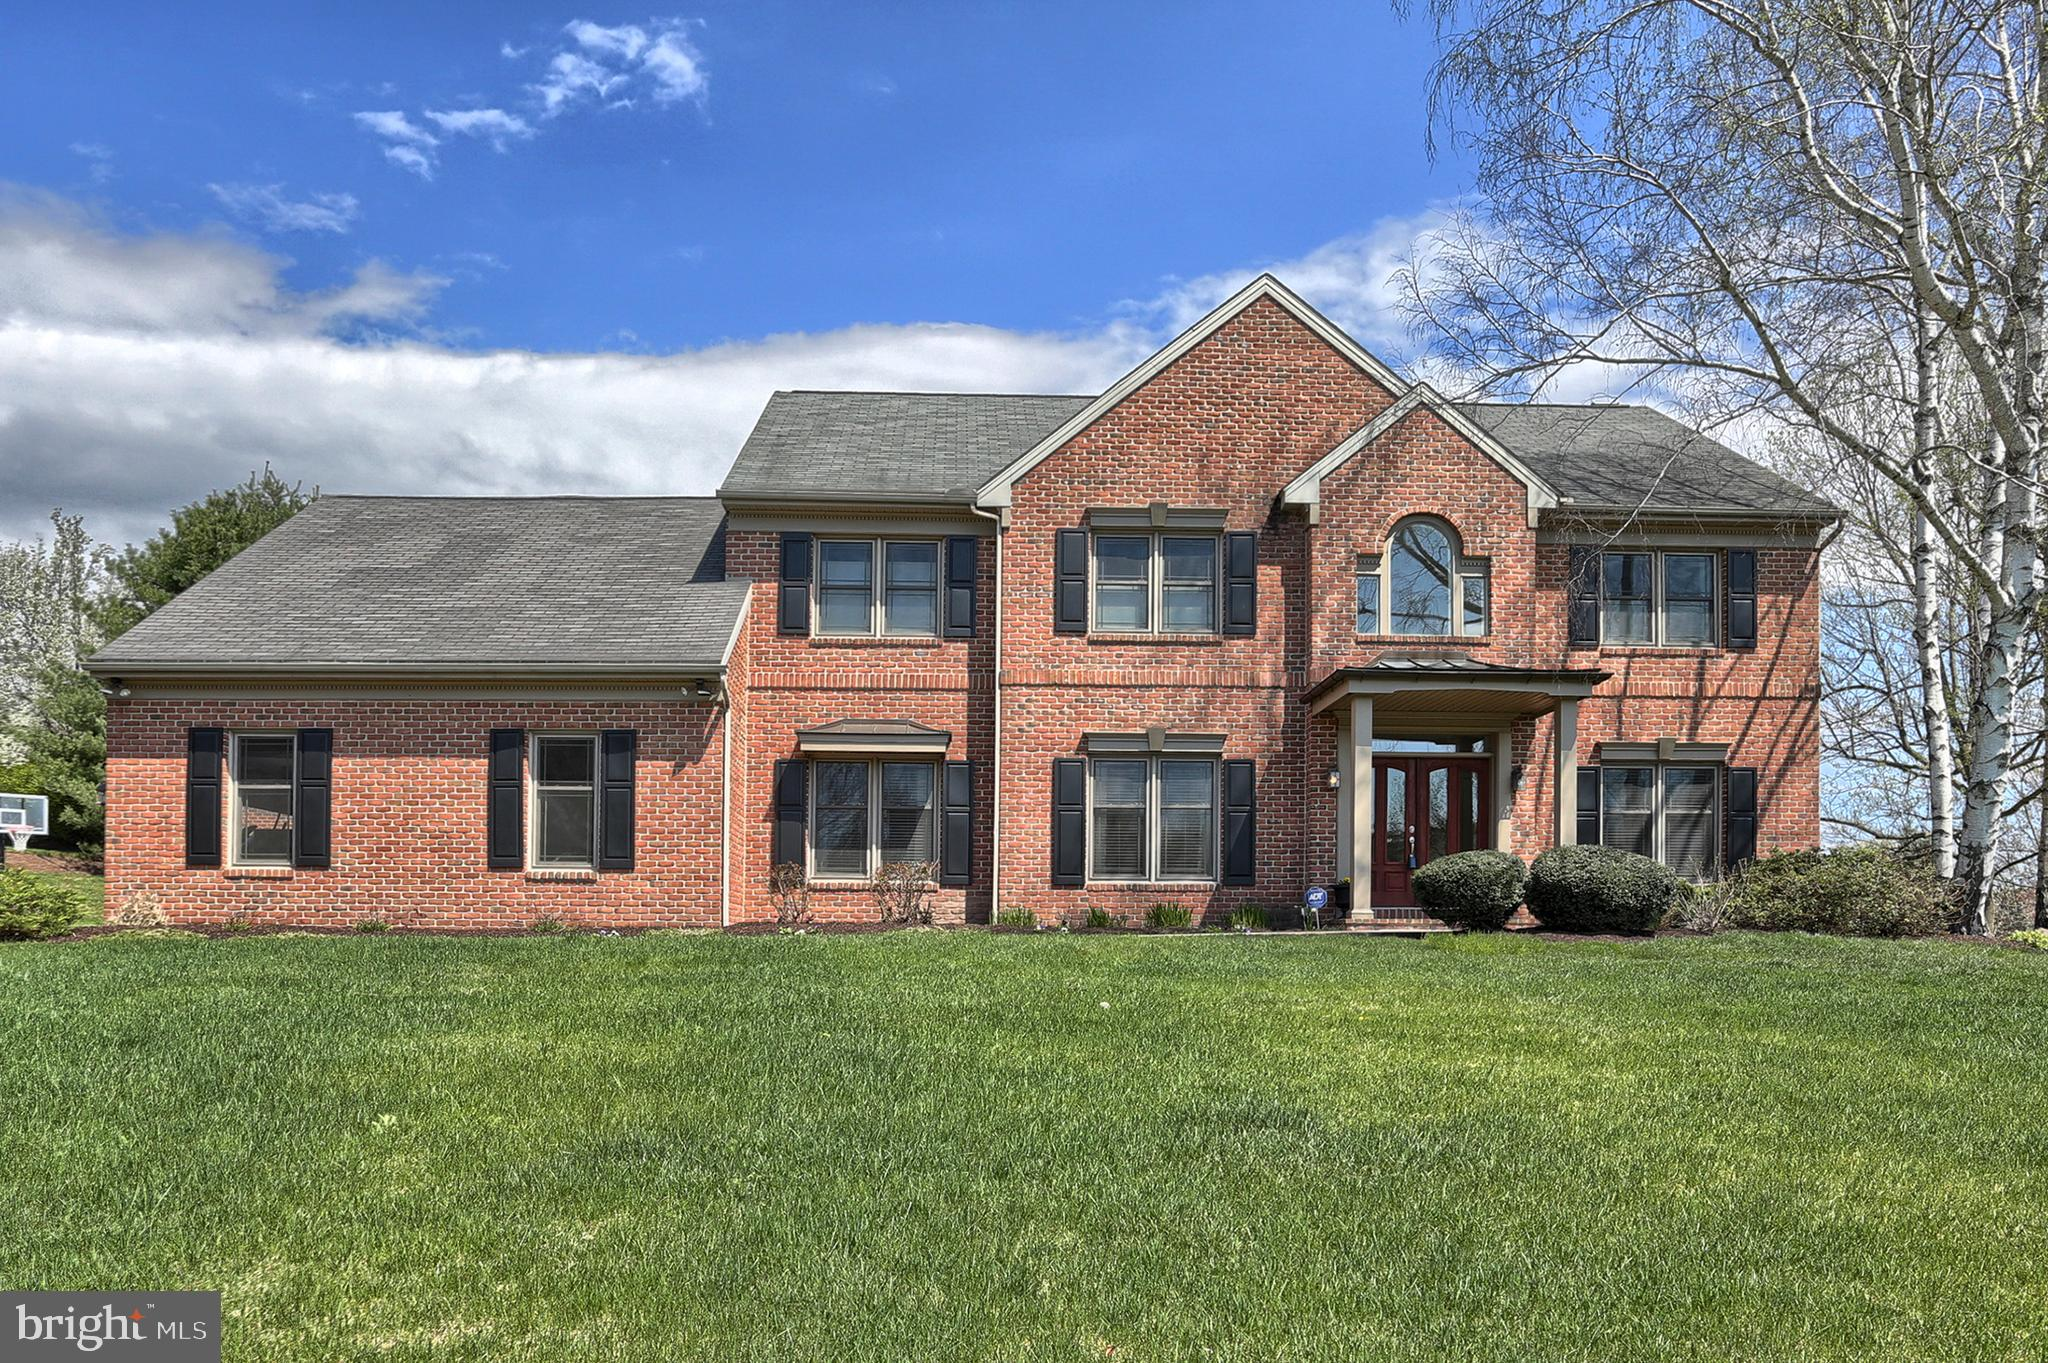 717 CRICKET GLEN ROAD, HUMMELSTOWN, PA 17036